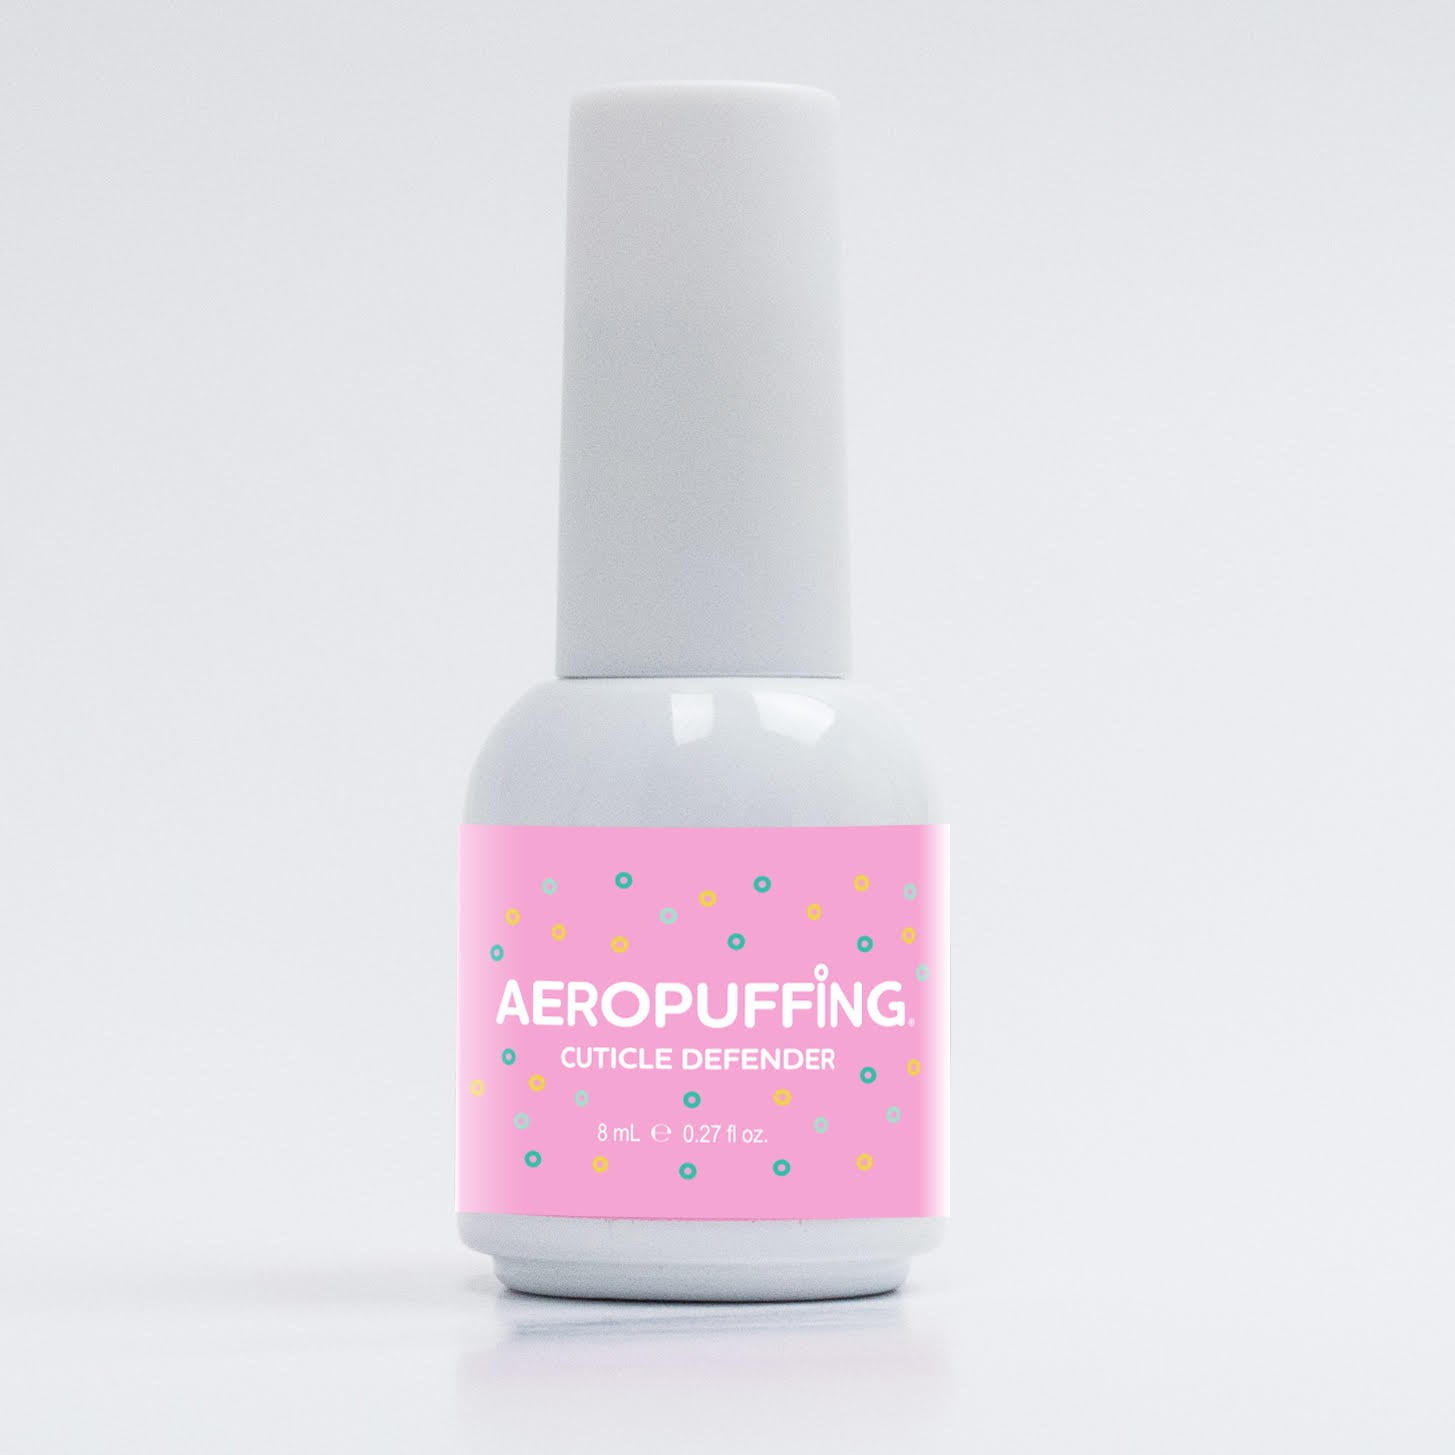 Aeropuffing Cuticle Defender 8ml